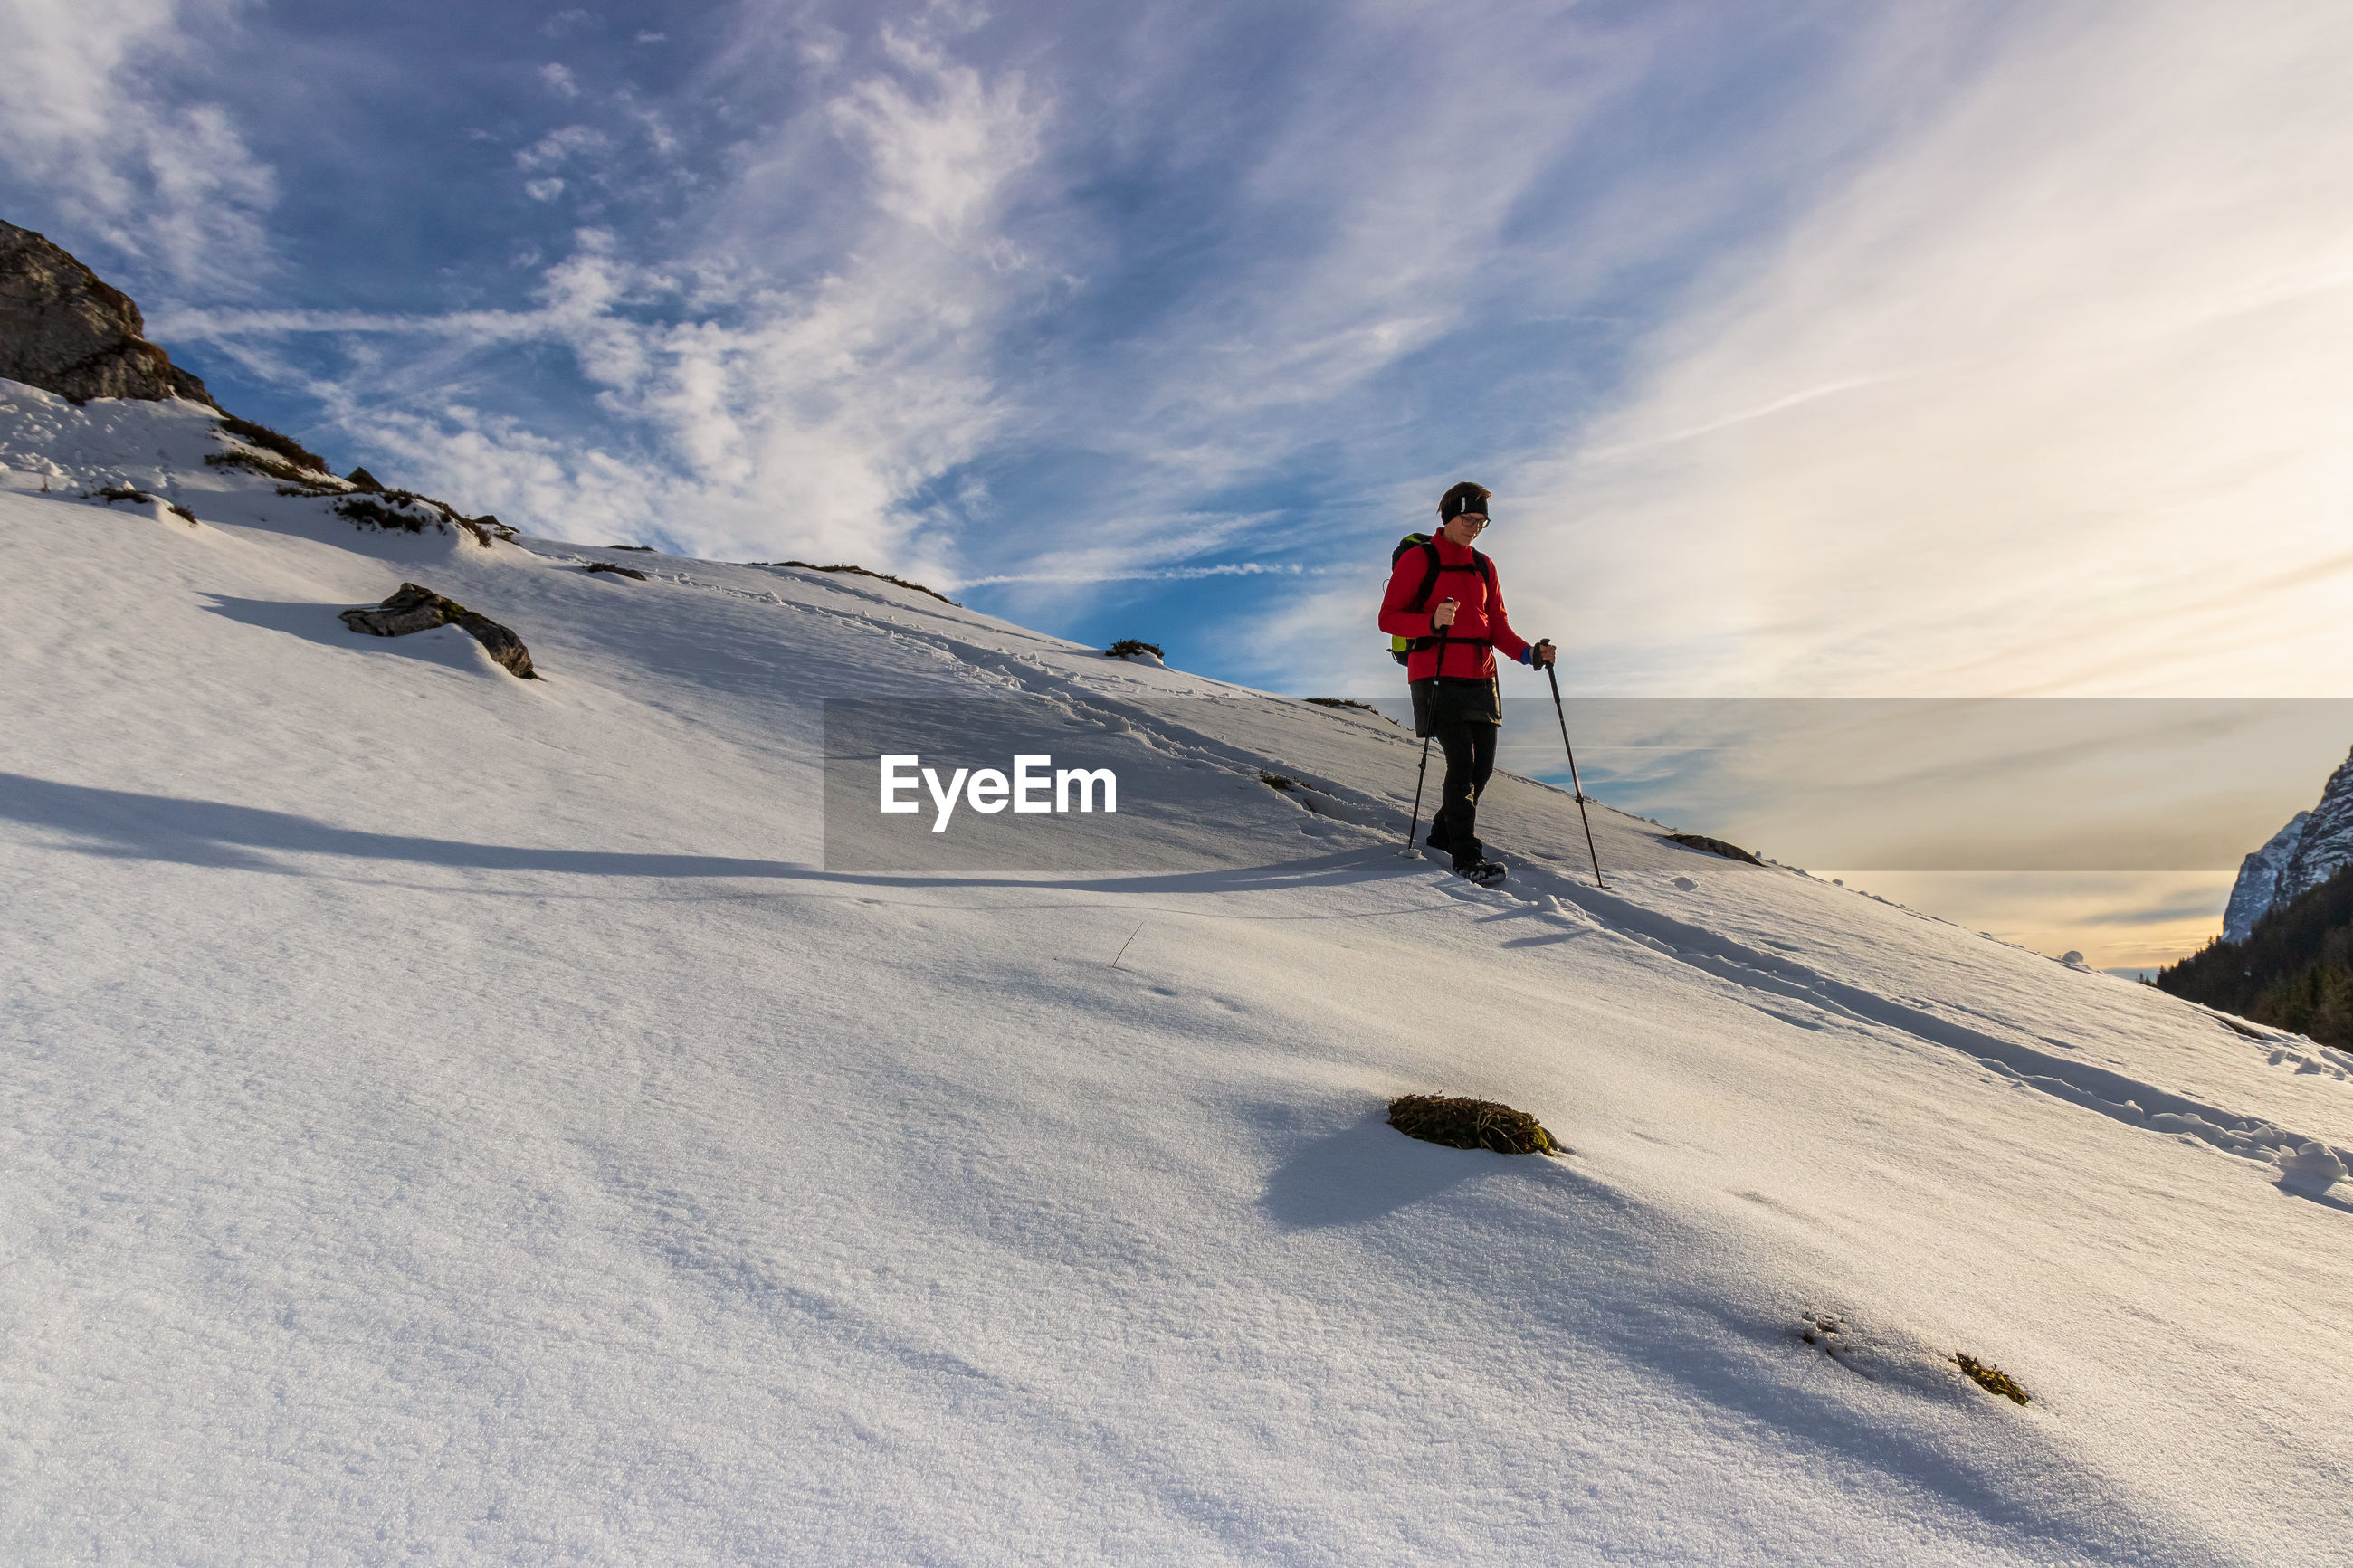 Low angle view of person hiking on snow covered land